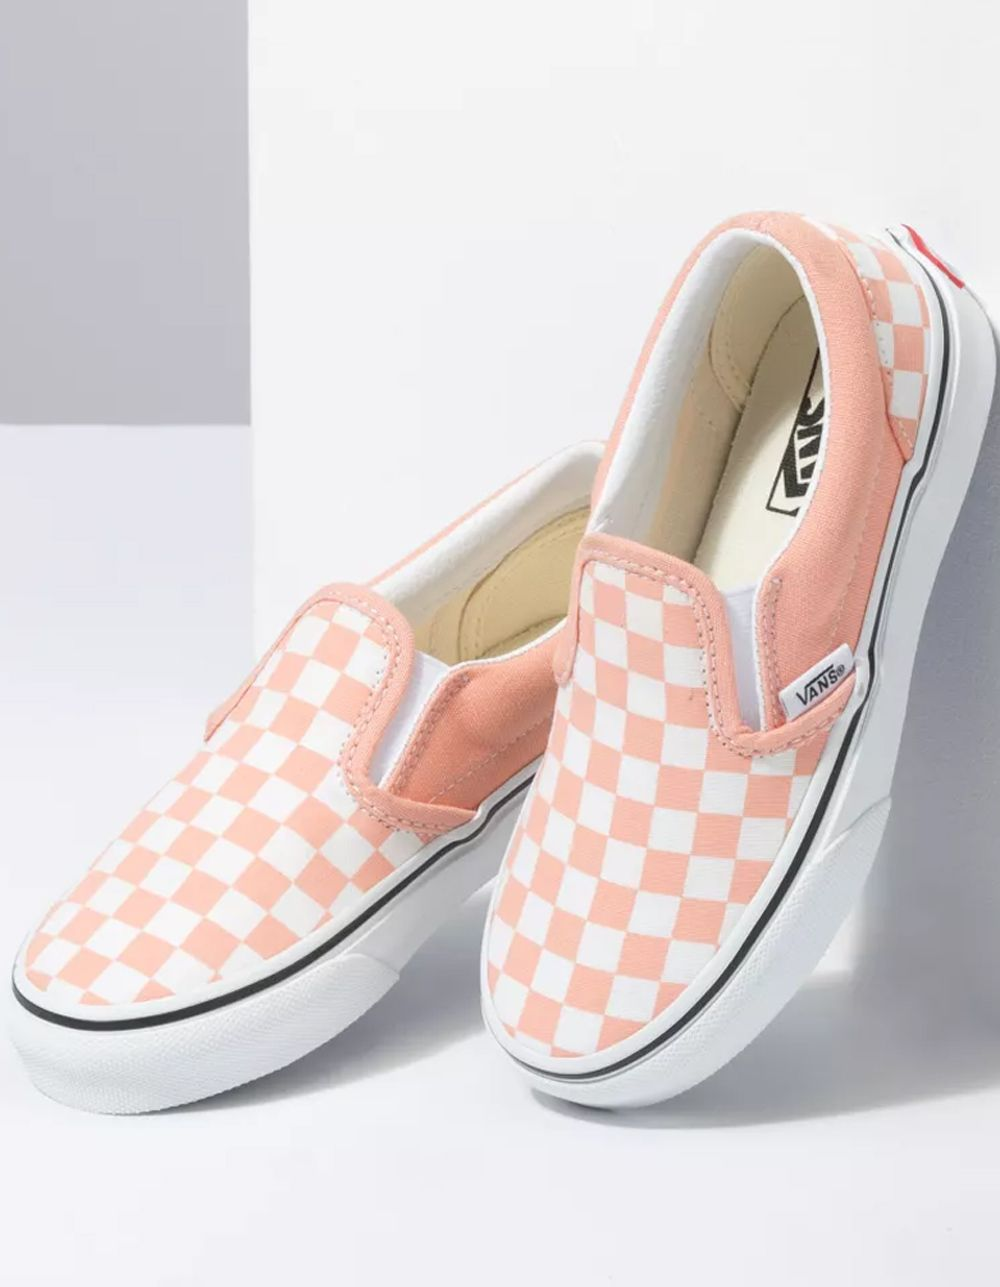 Vans Checkerboard Classic Slip-On Shoes. The Checkerboard Kids Classic Slip-On features sturdy low profile slip-on canvas uppers with the iconic Vans checkerboard print, padded collars, elastic side accents, and signature rubber waffle outsoles. Imported.